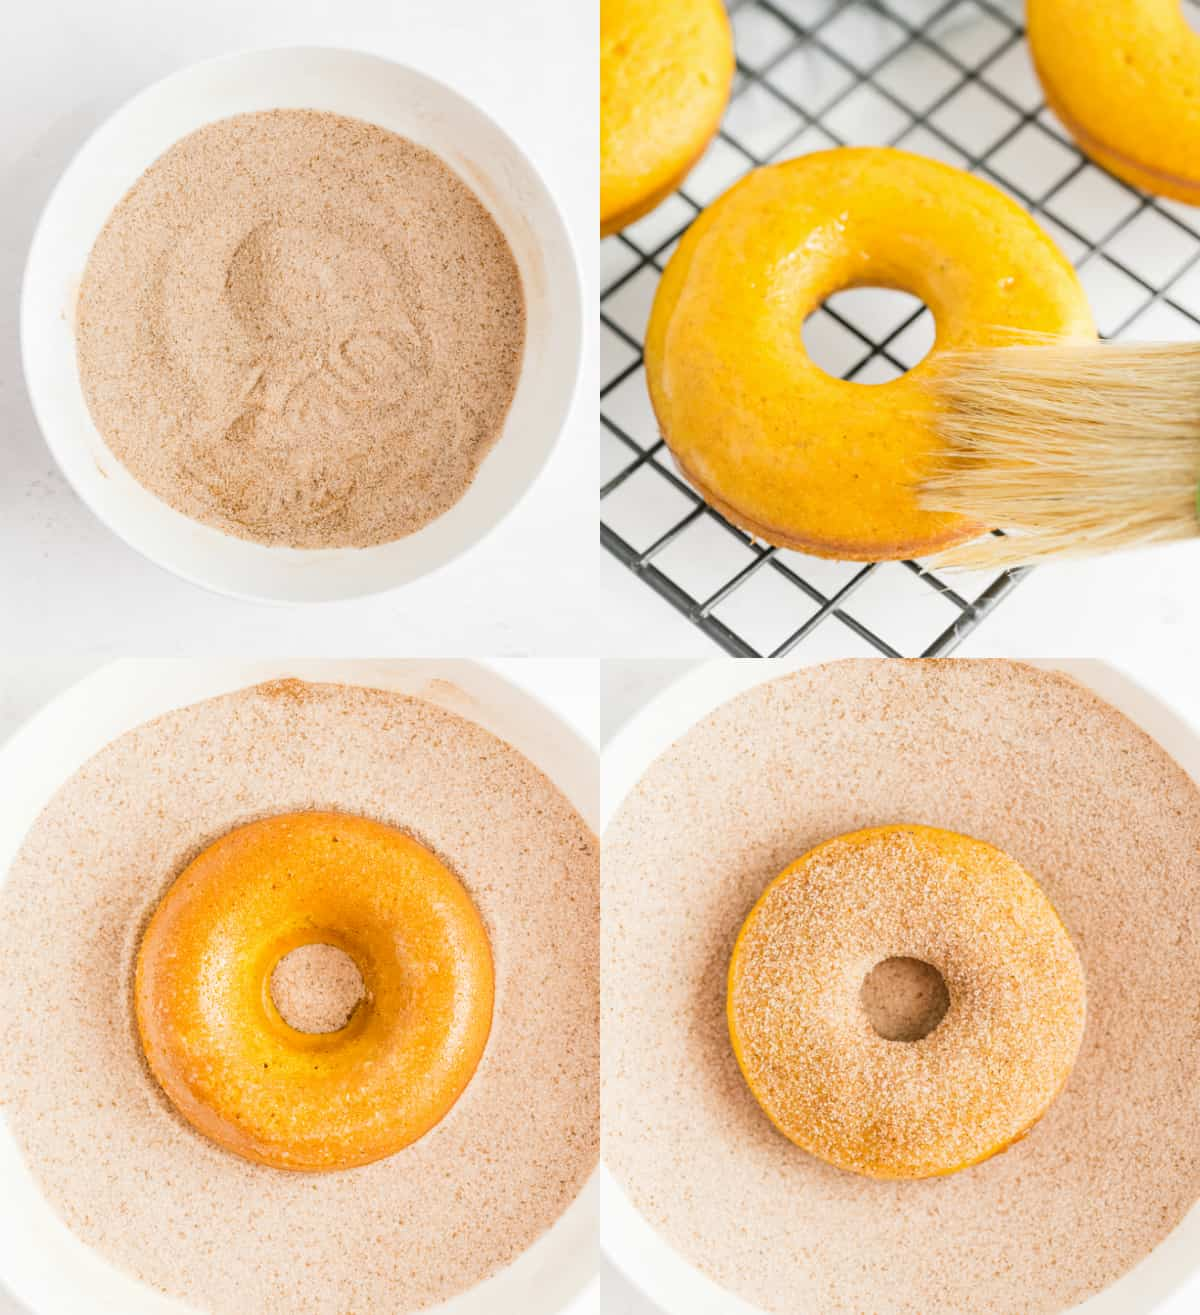 coating the donuts in cinnamon sugar topping